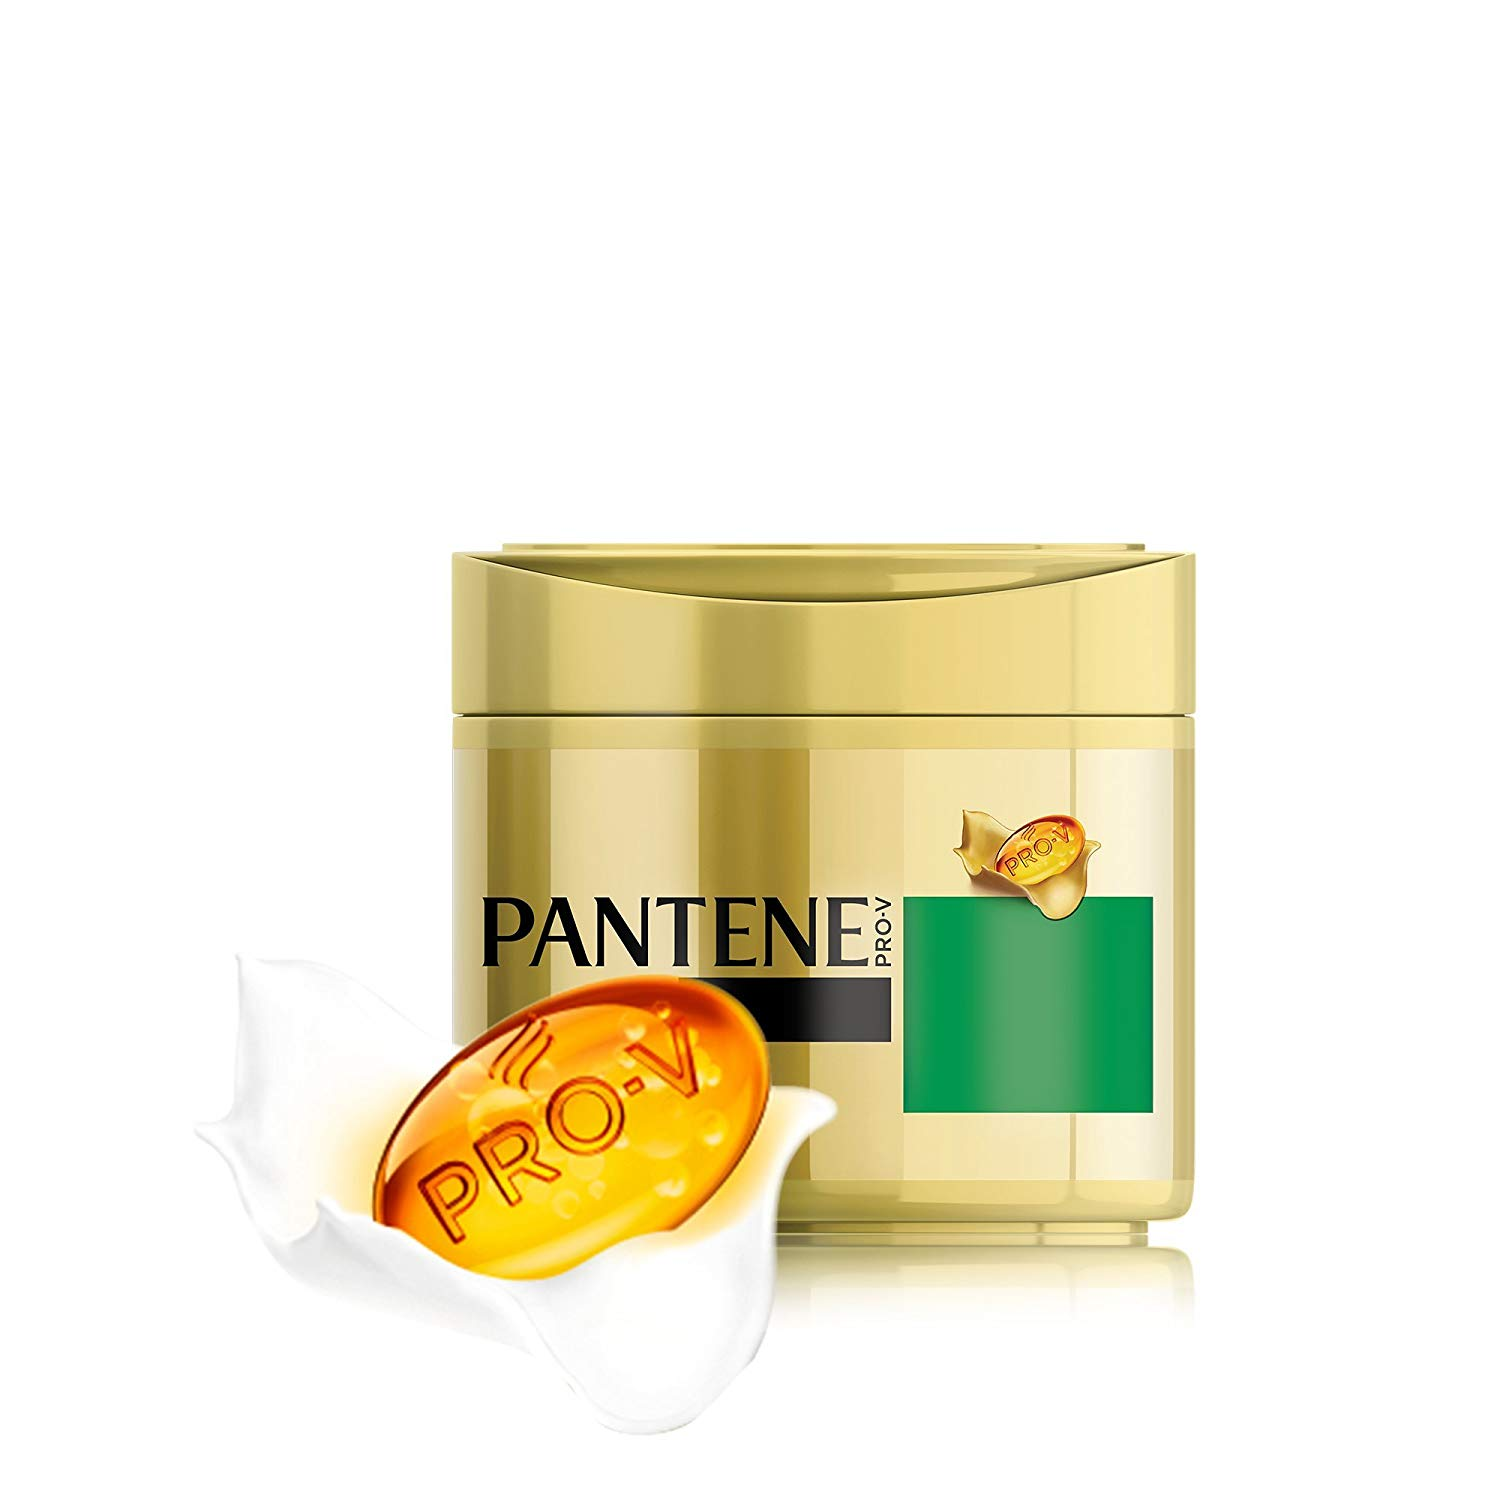 Pantene Masque Smooth and Sleek,300 ml (add-on)